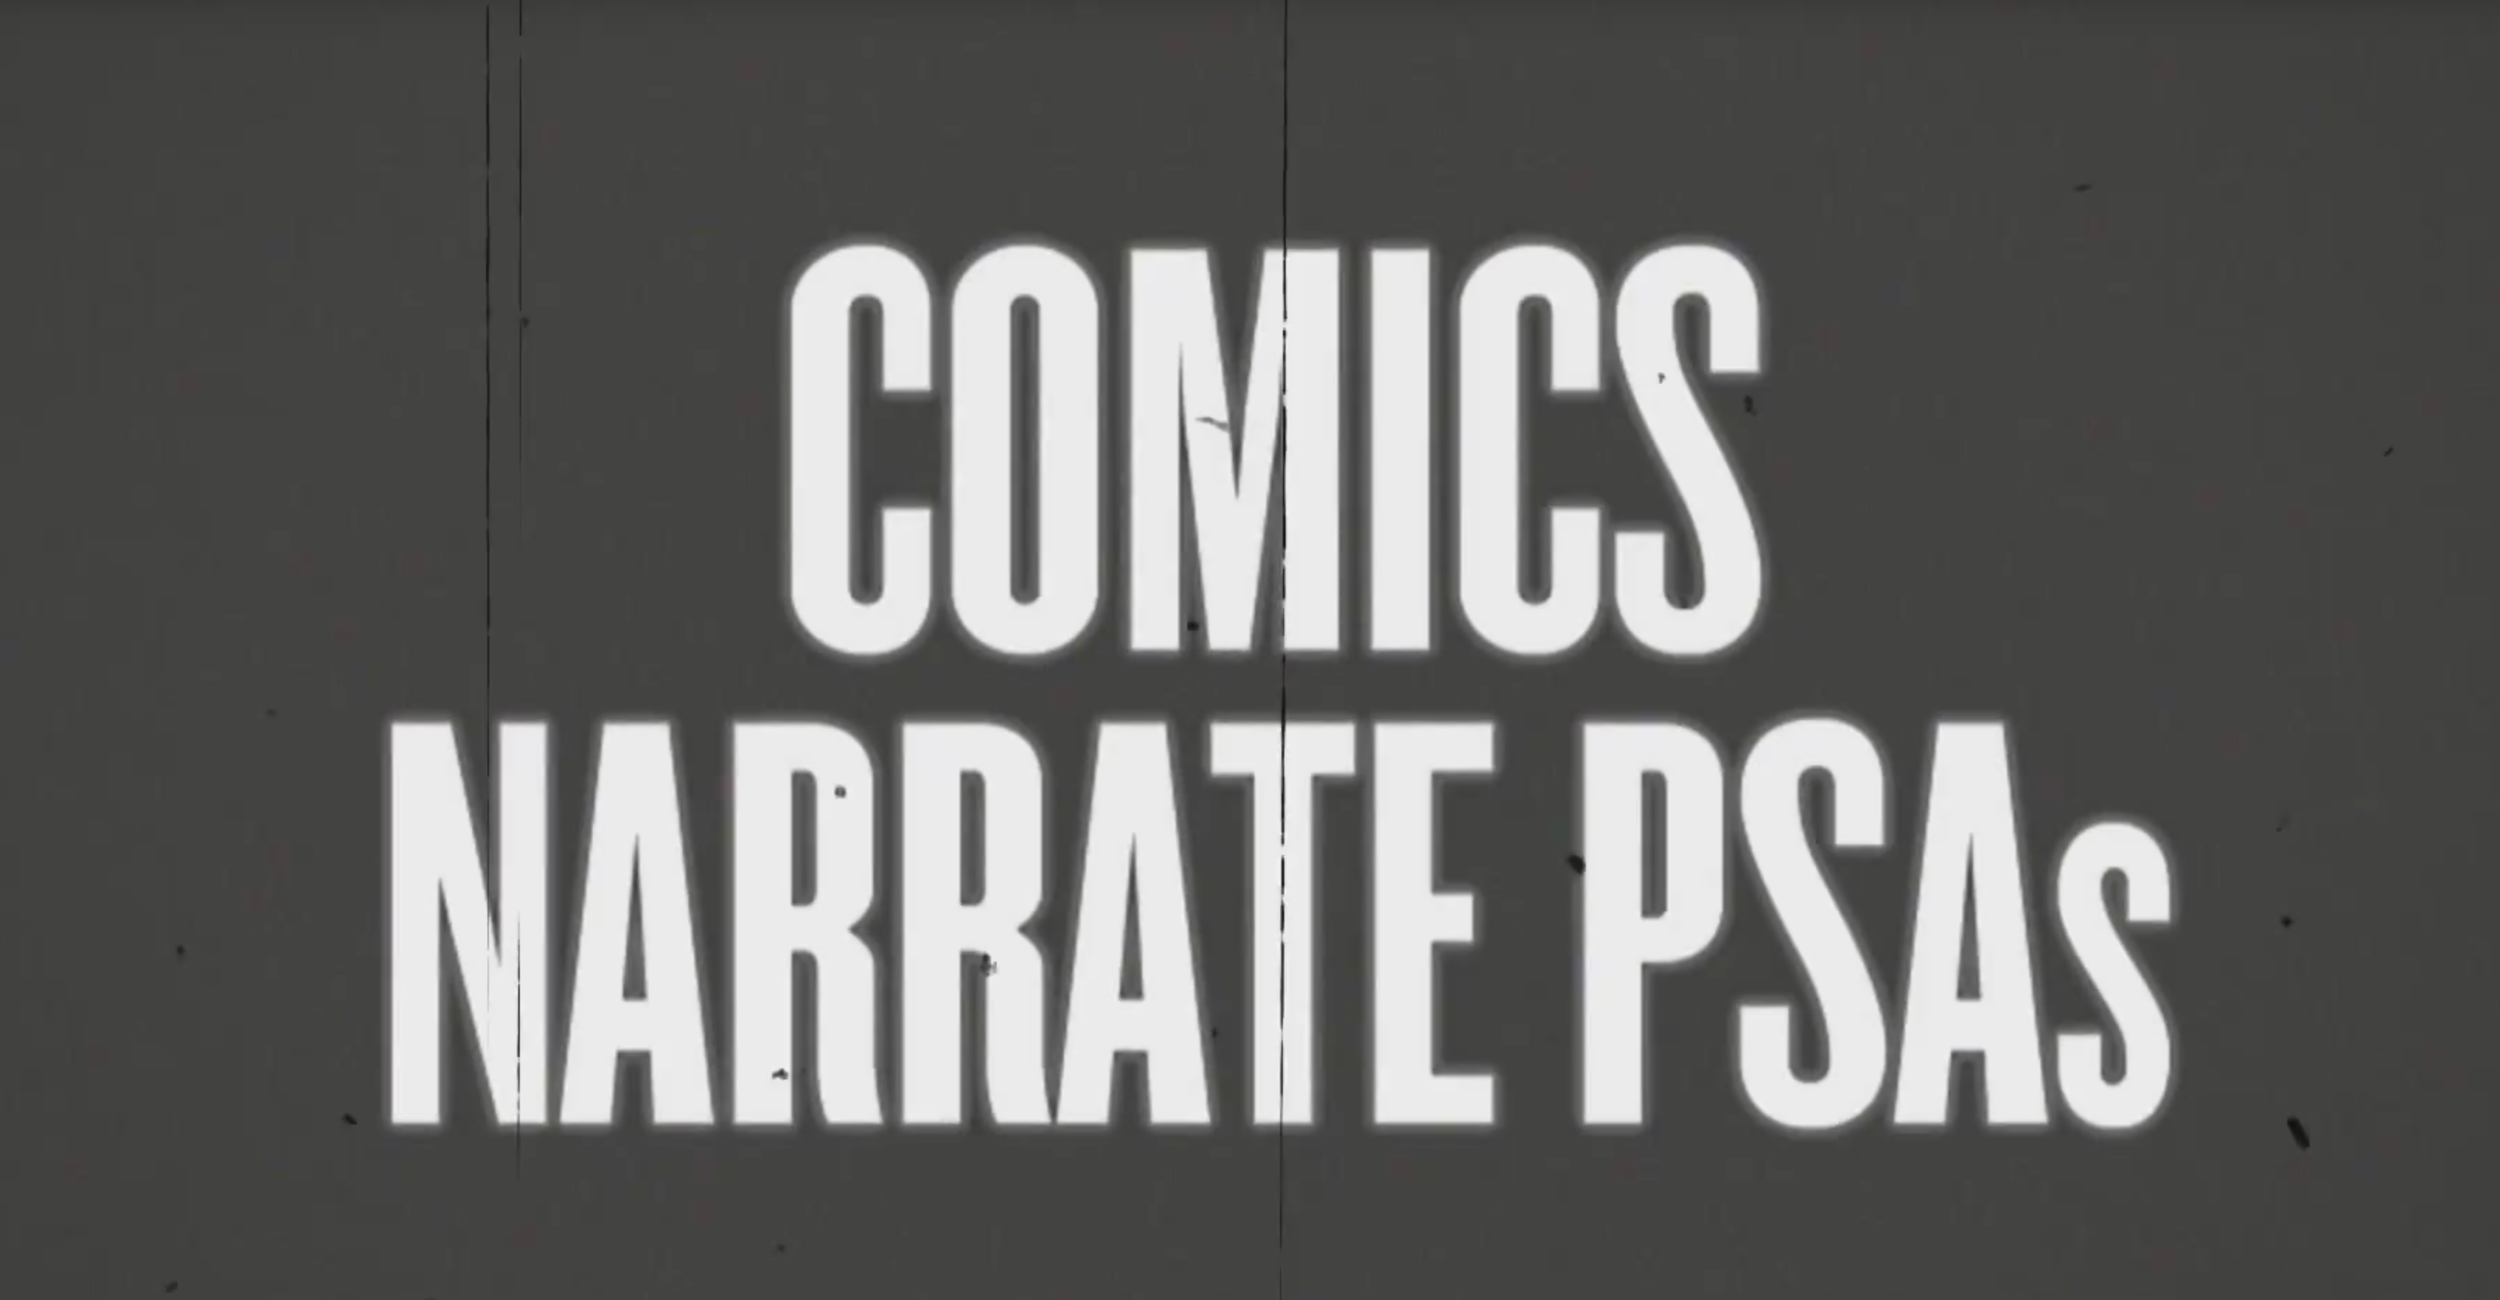 Comics Narrate PSAs